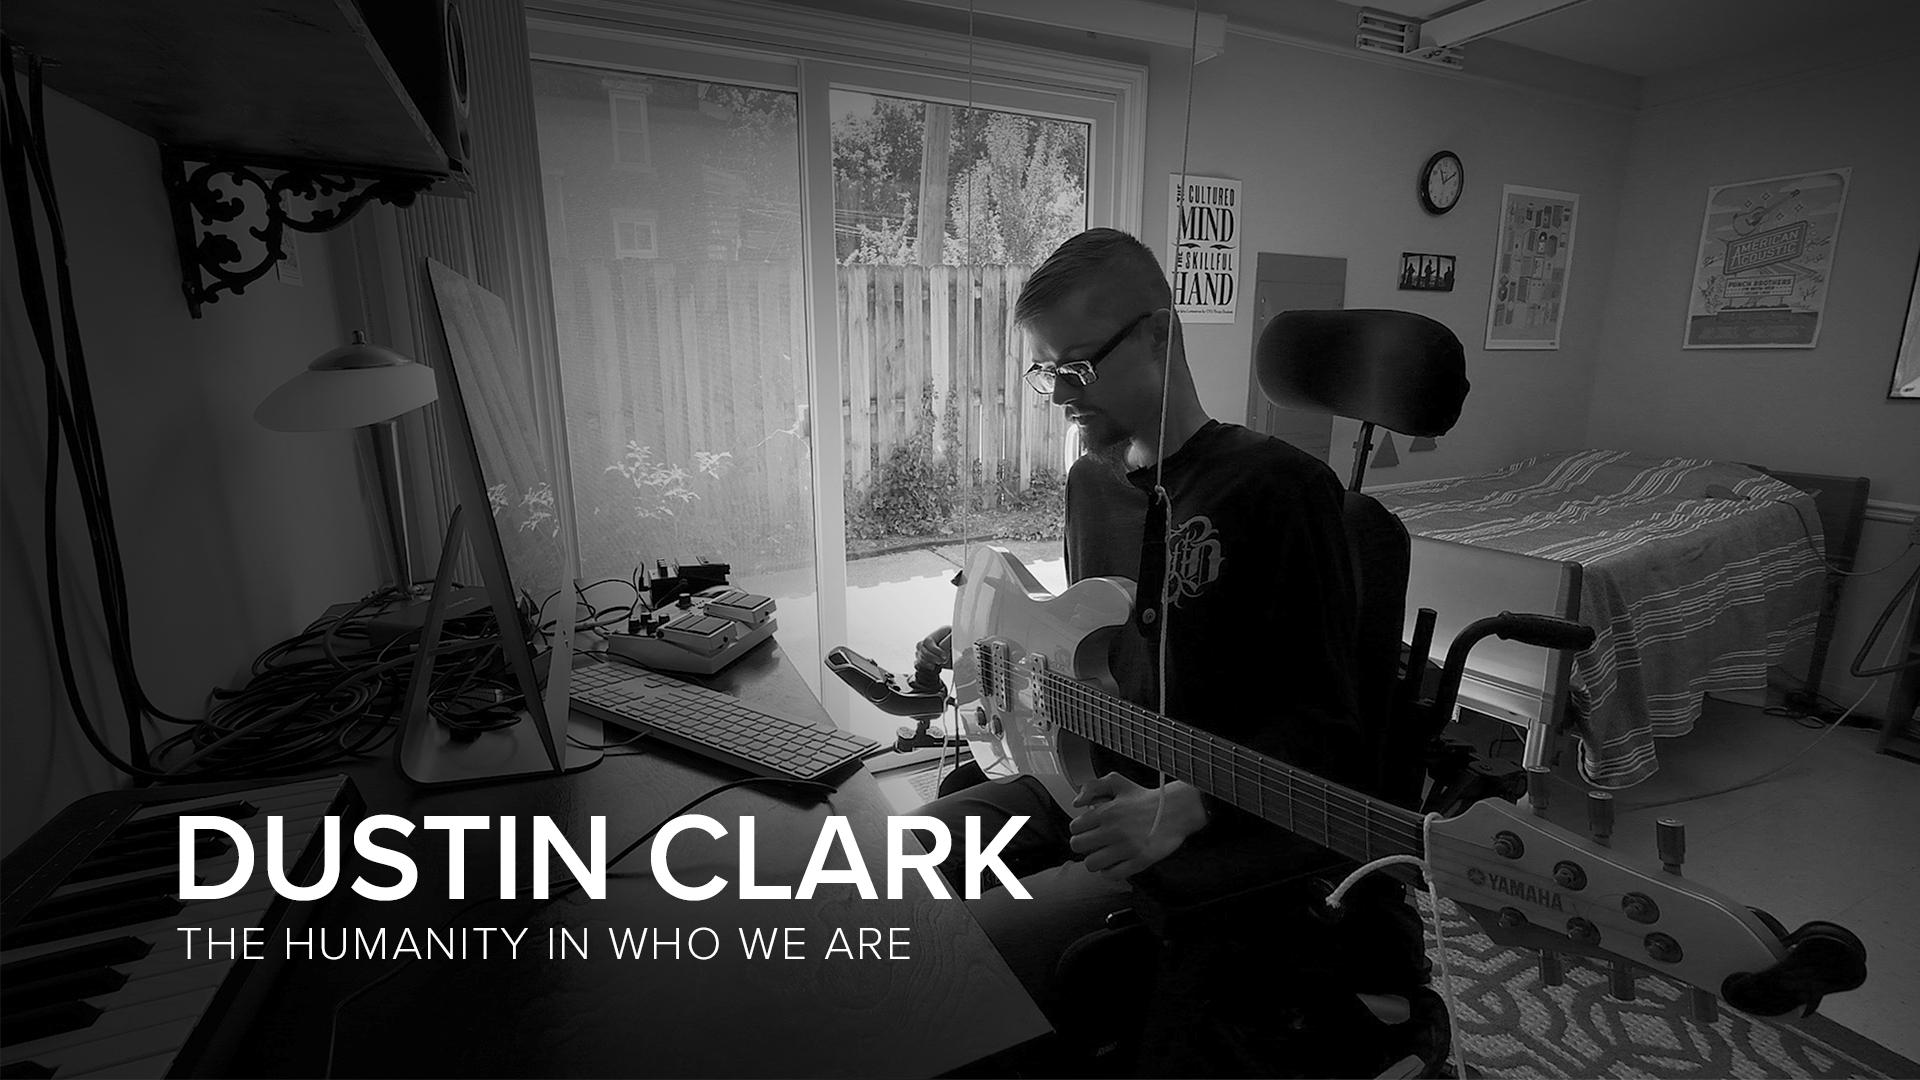 Dustin Clark: The Humanity in Who We Are